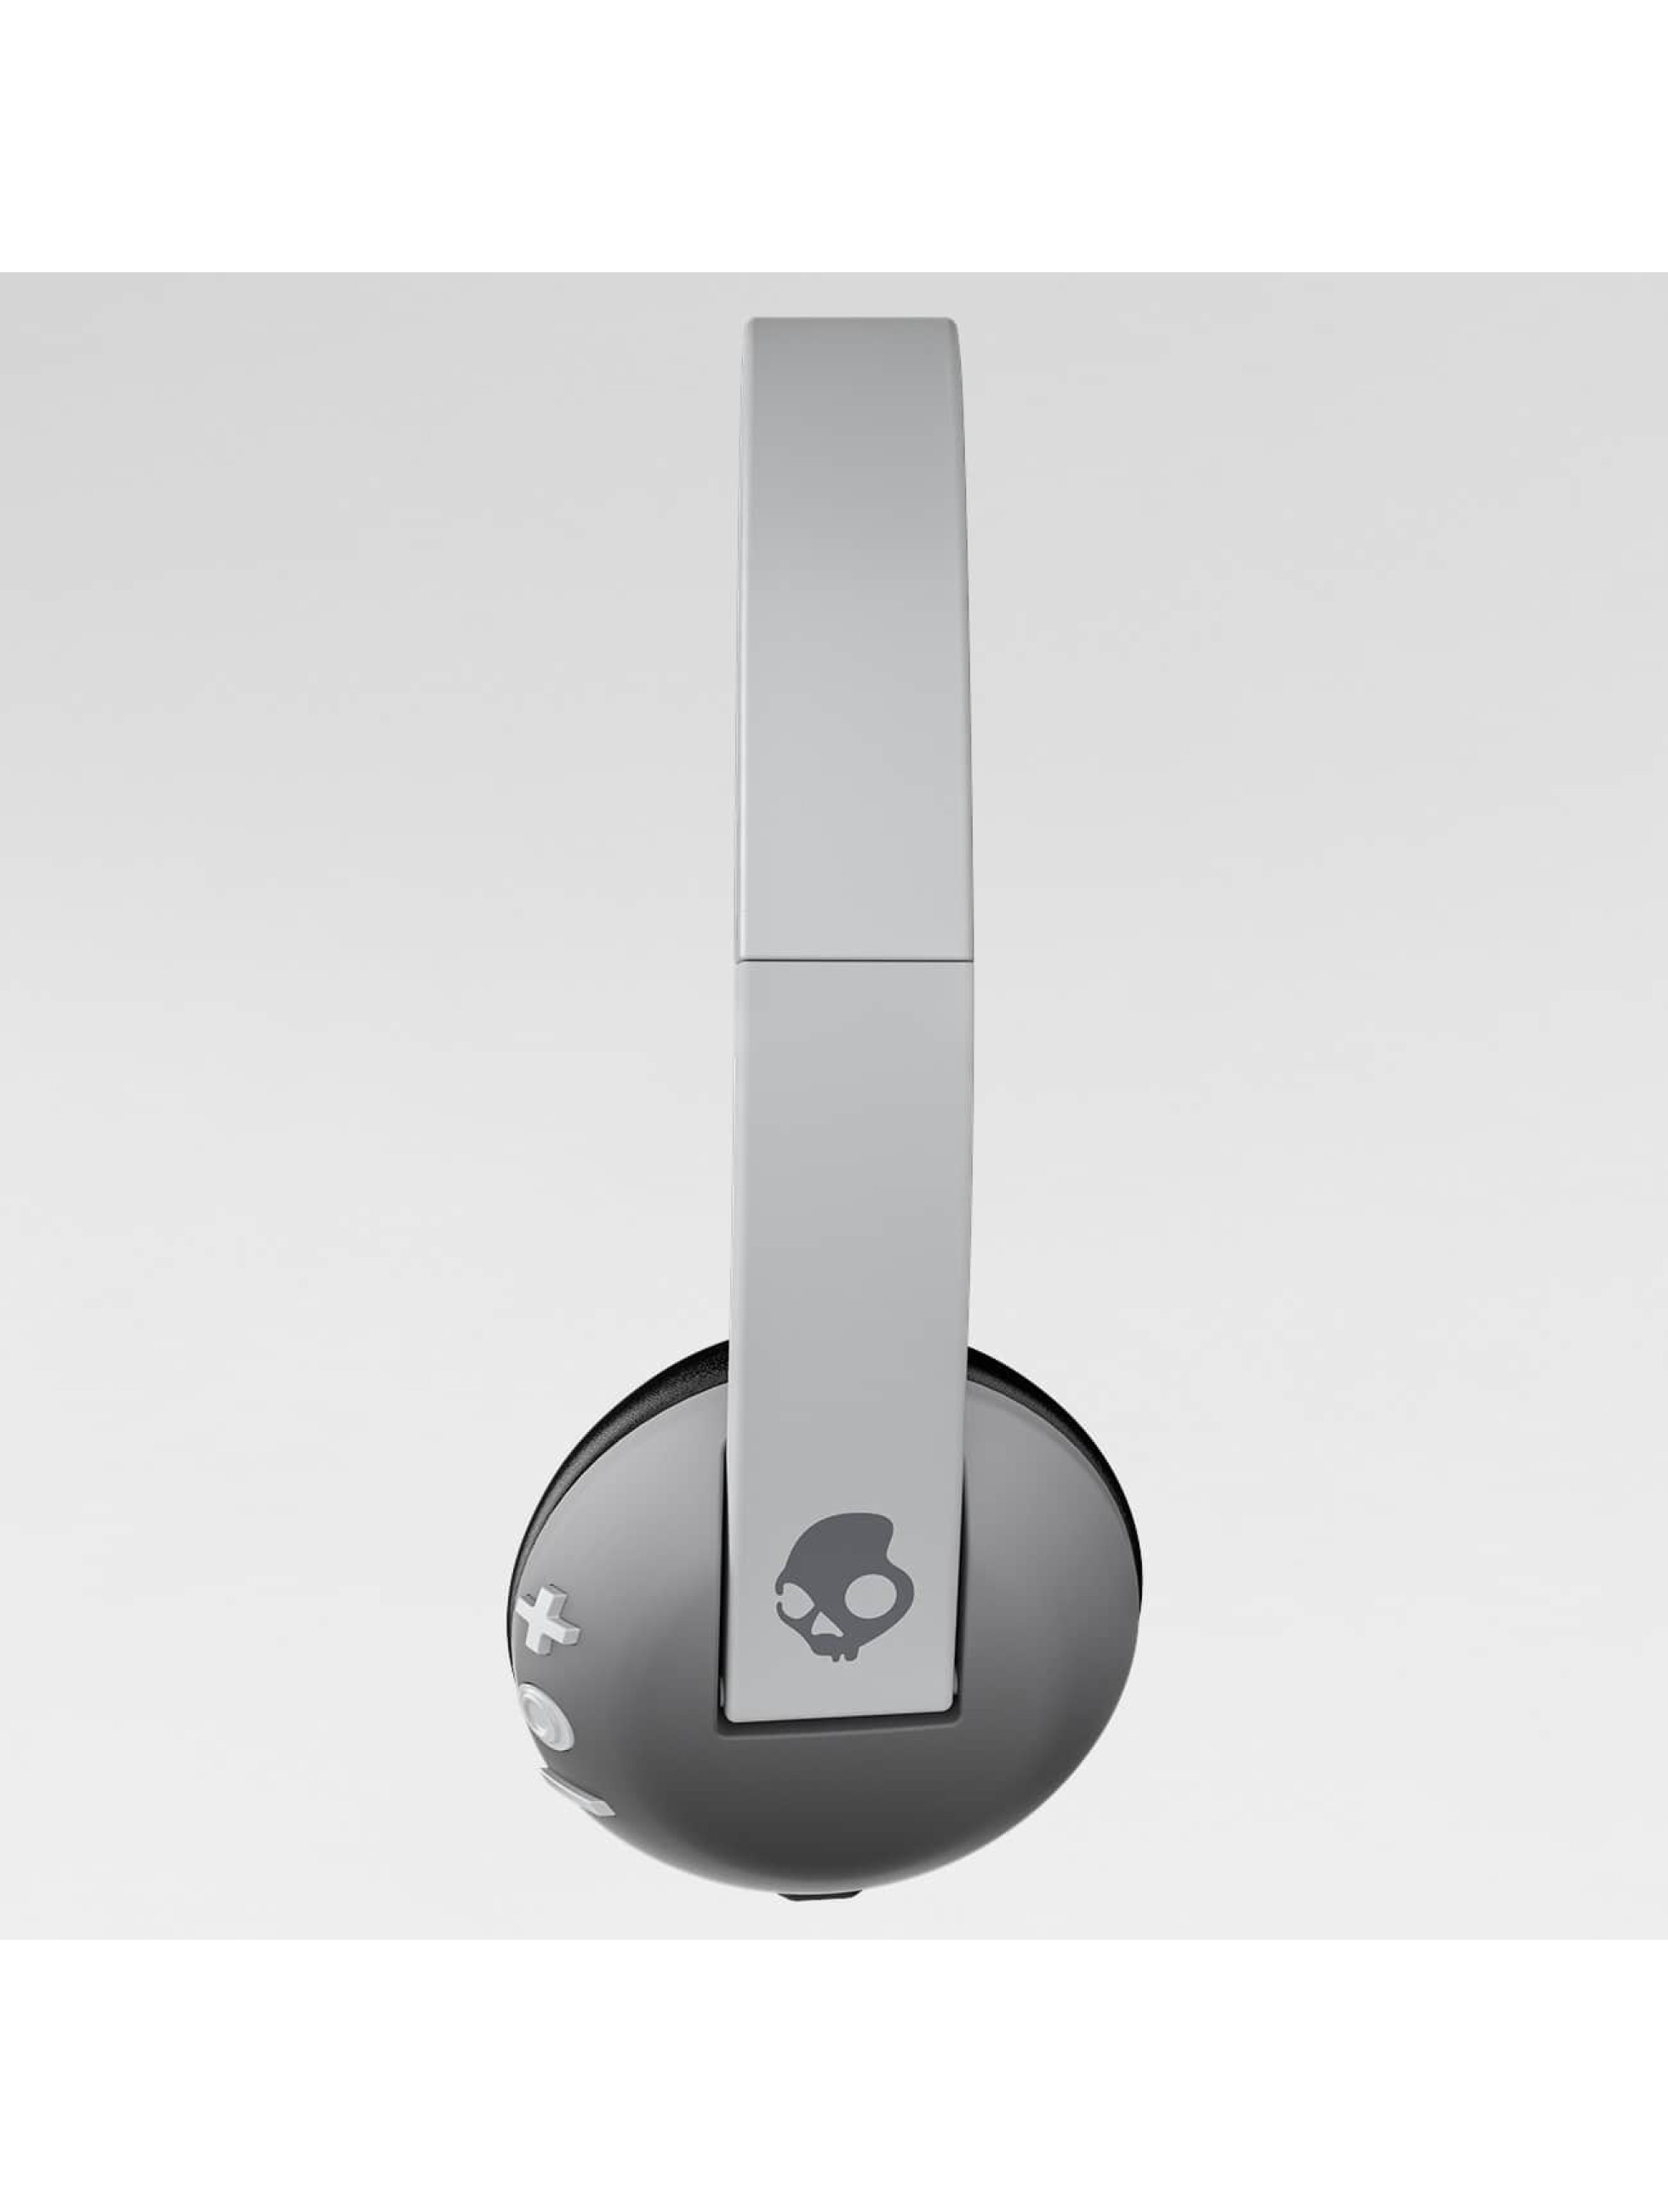 Skullcandy Kopfhörer Uproar Wireless On Ear grau